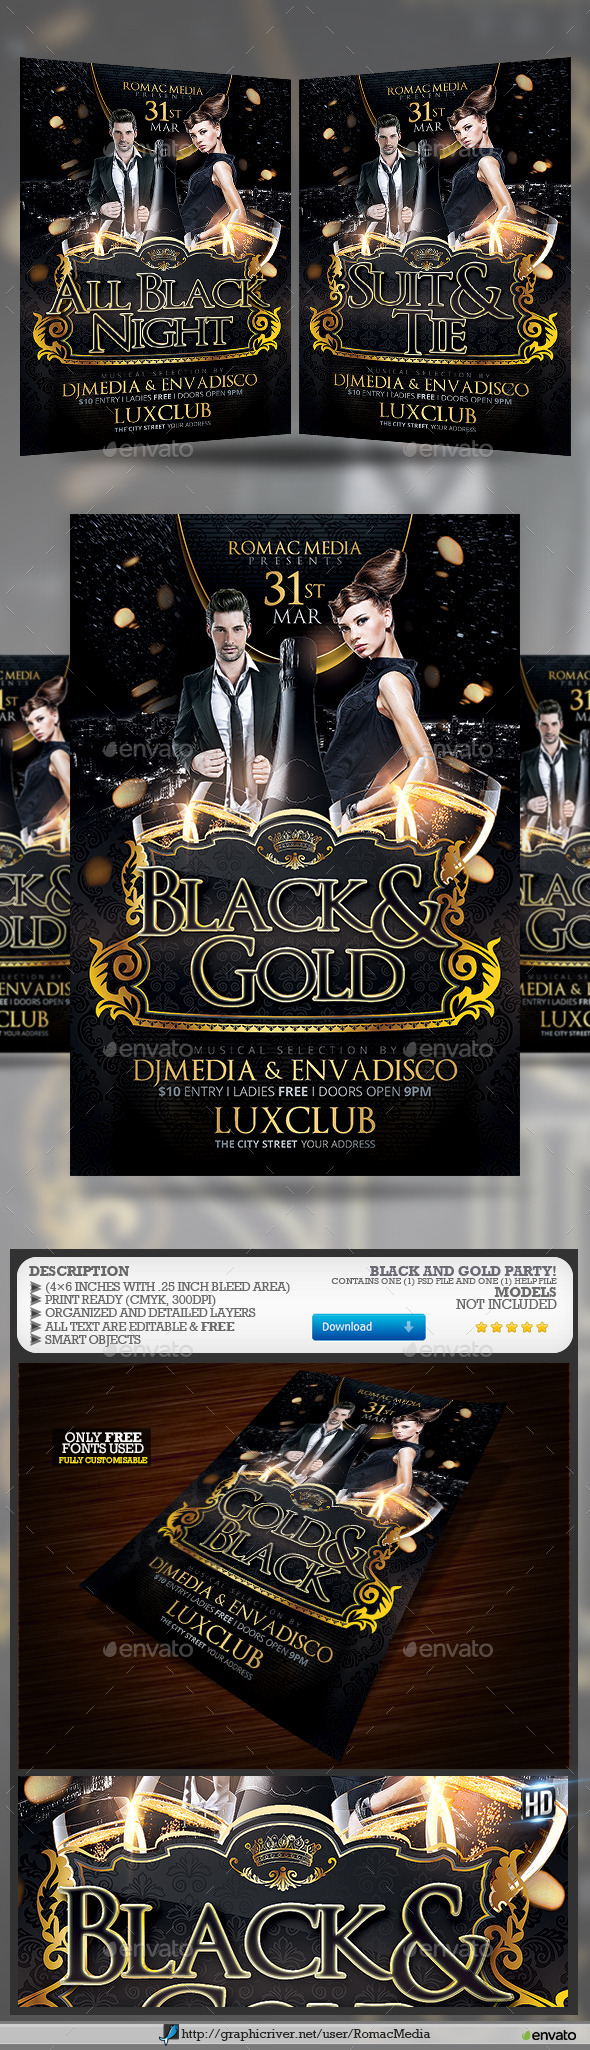 Black and Gold Birthday Party - Clubs & Parties Events